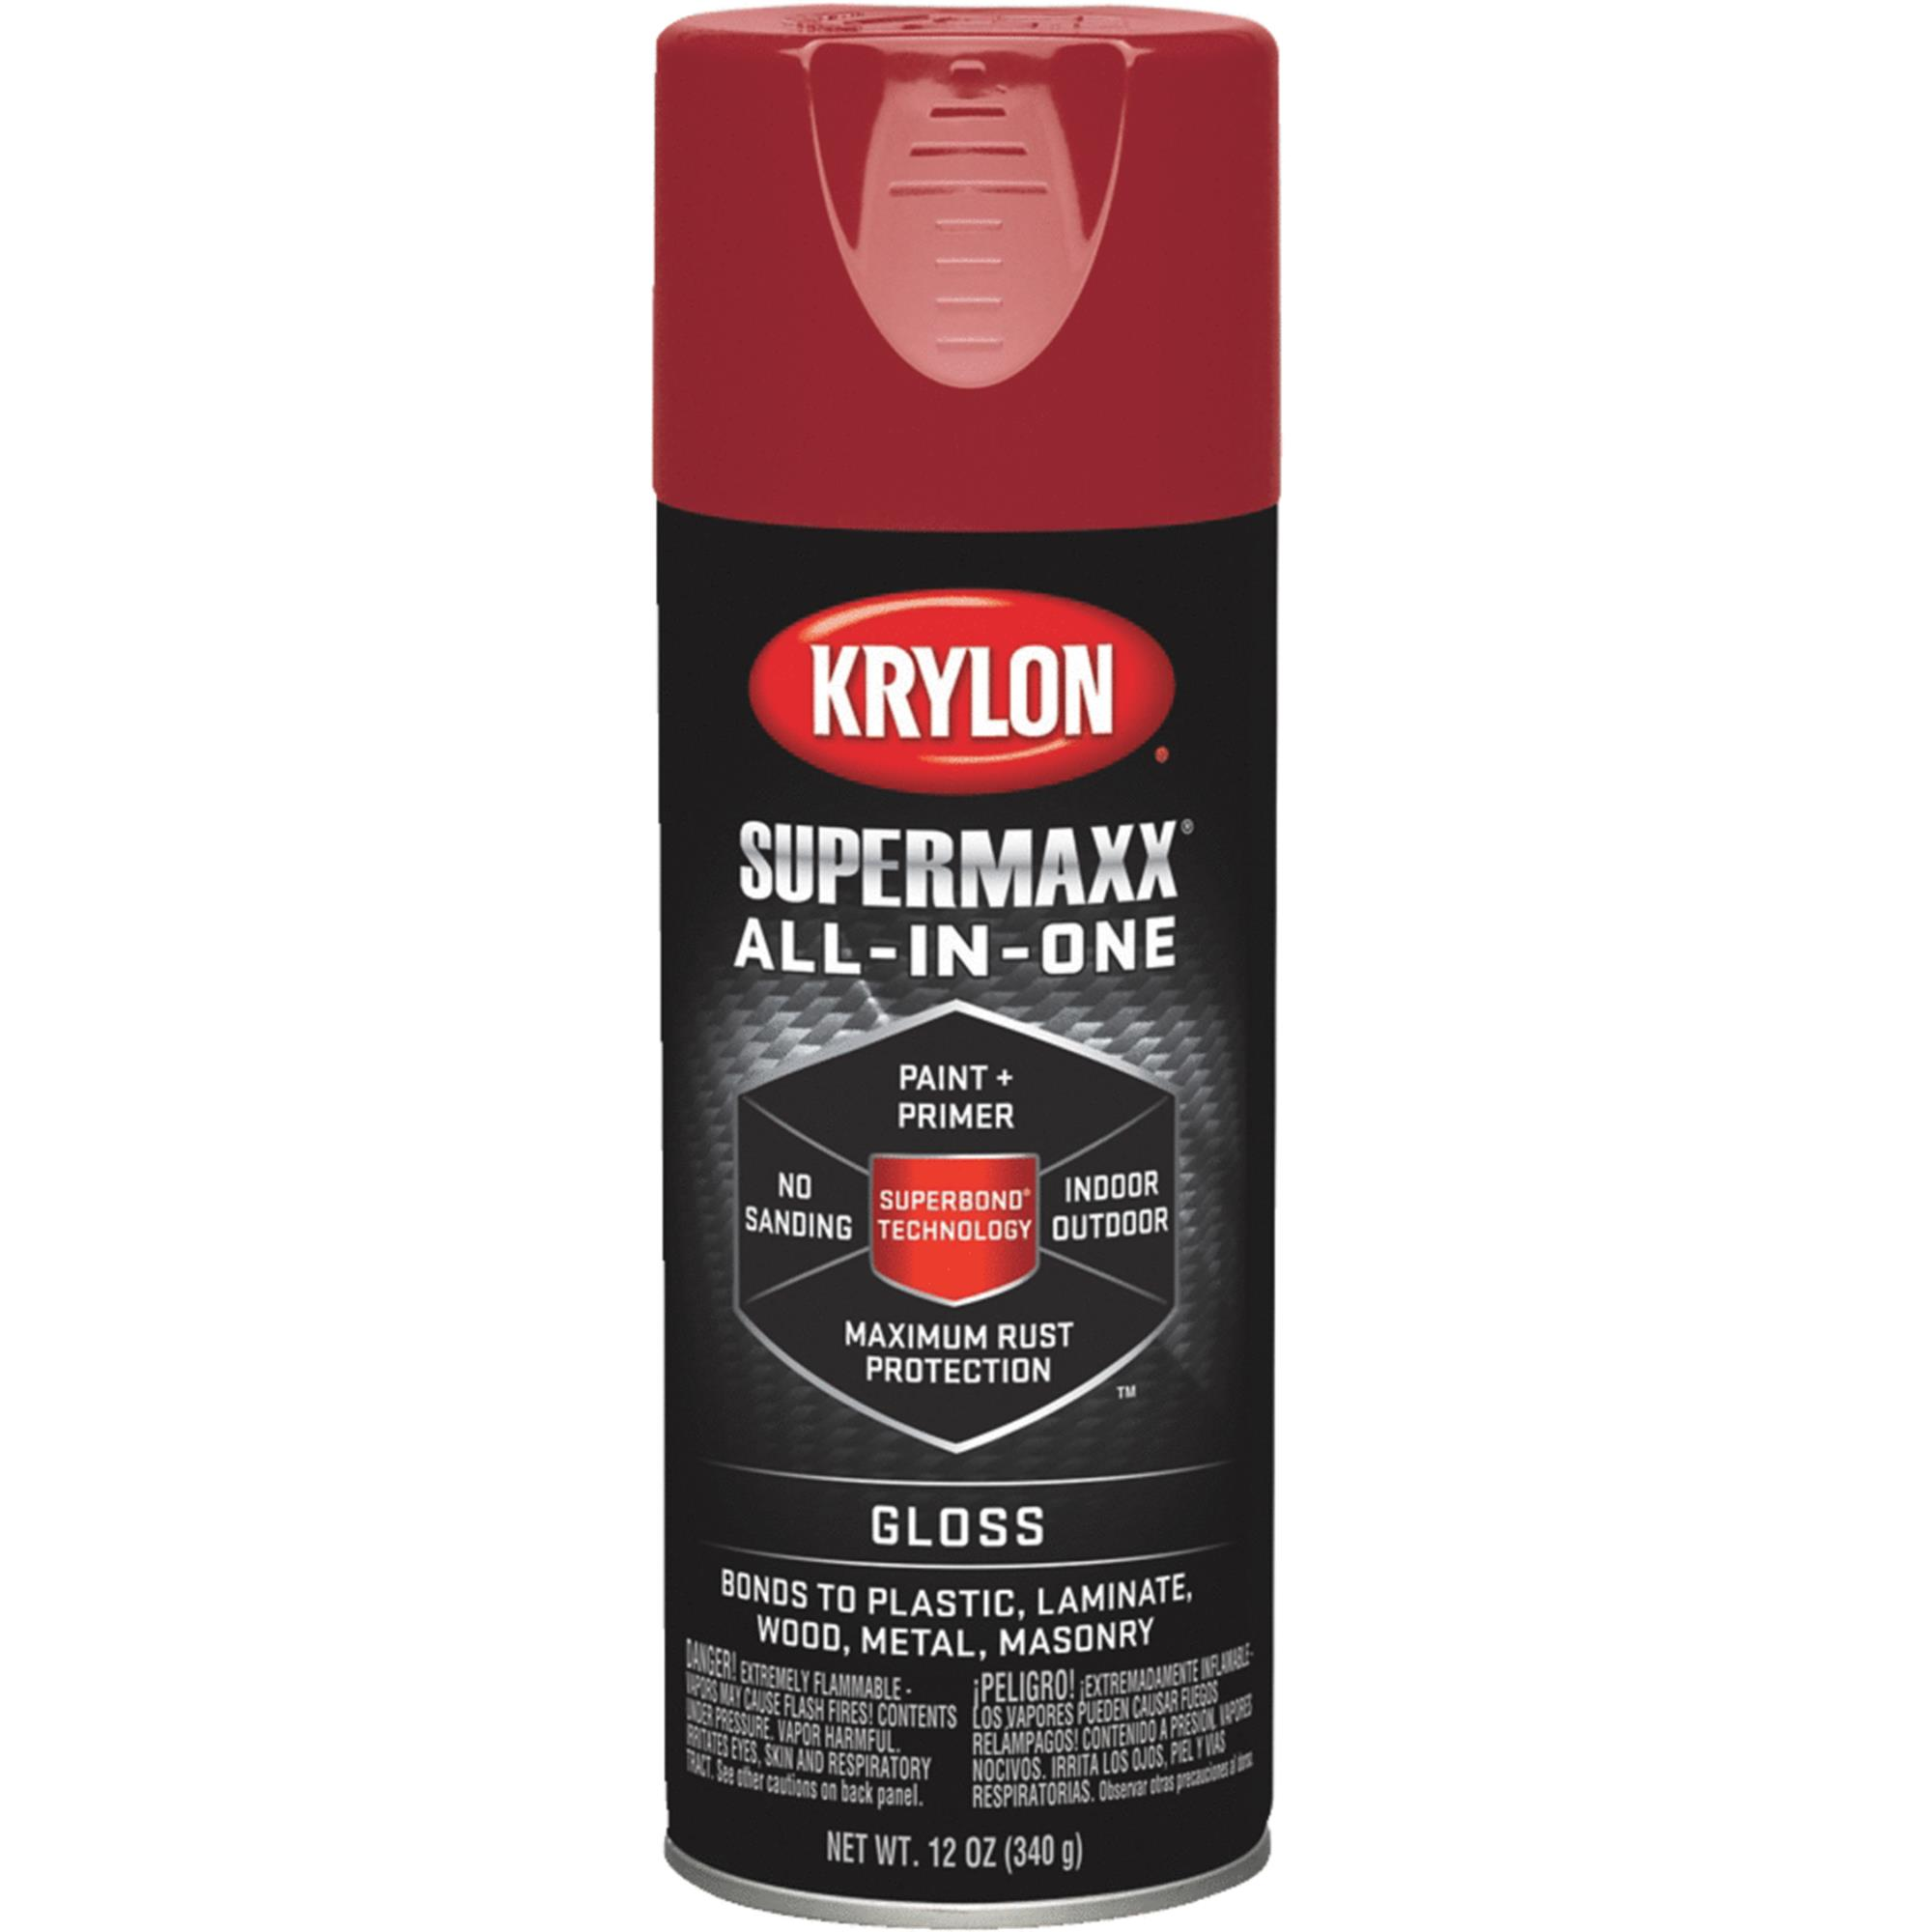 Krylon Supermaxx Gloss, Cherry Red